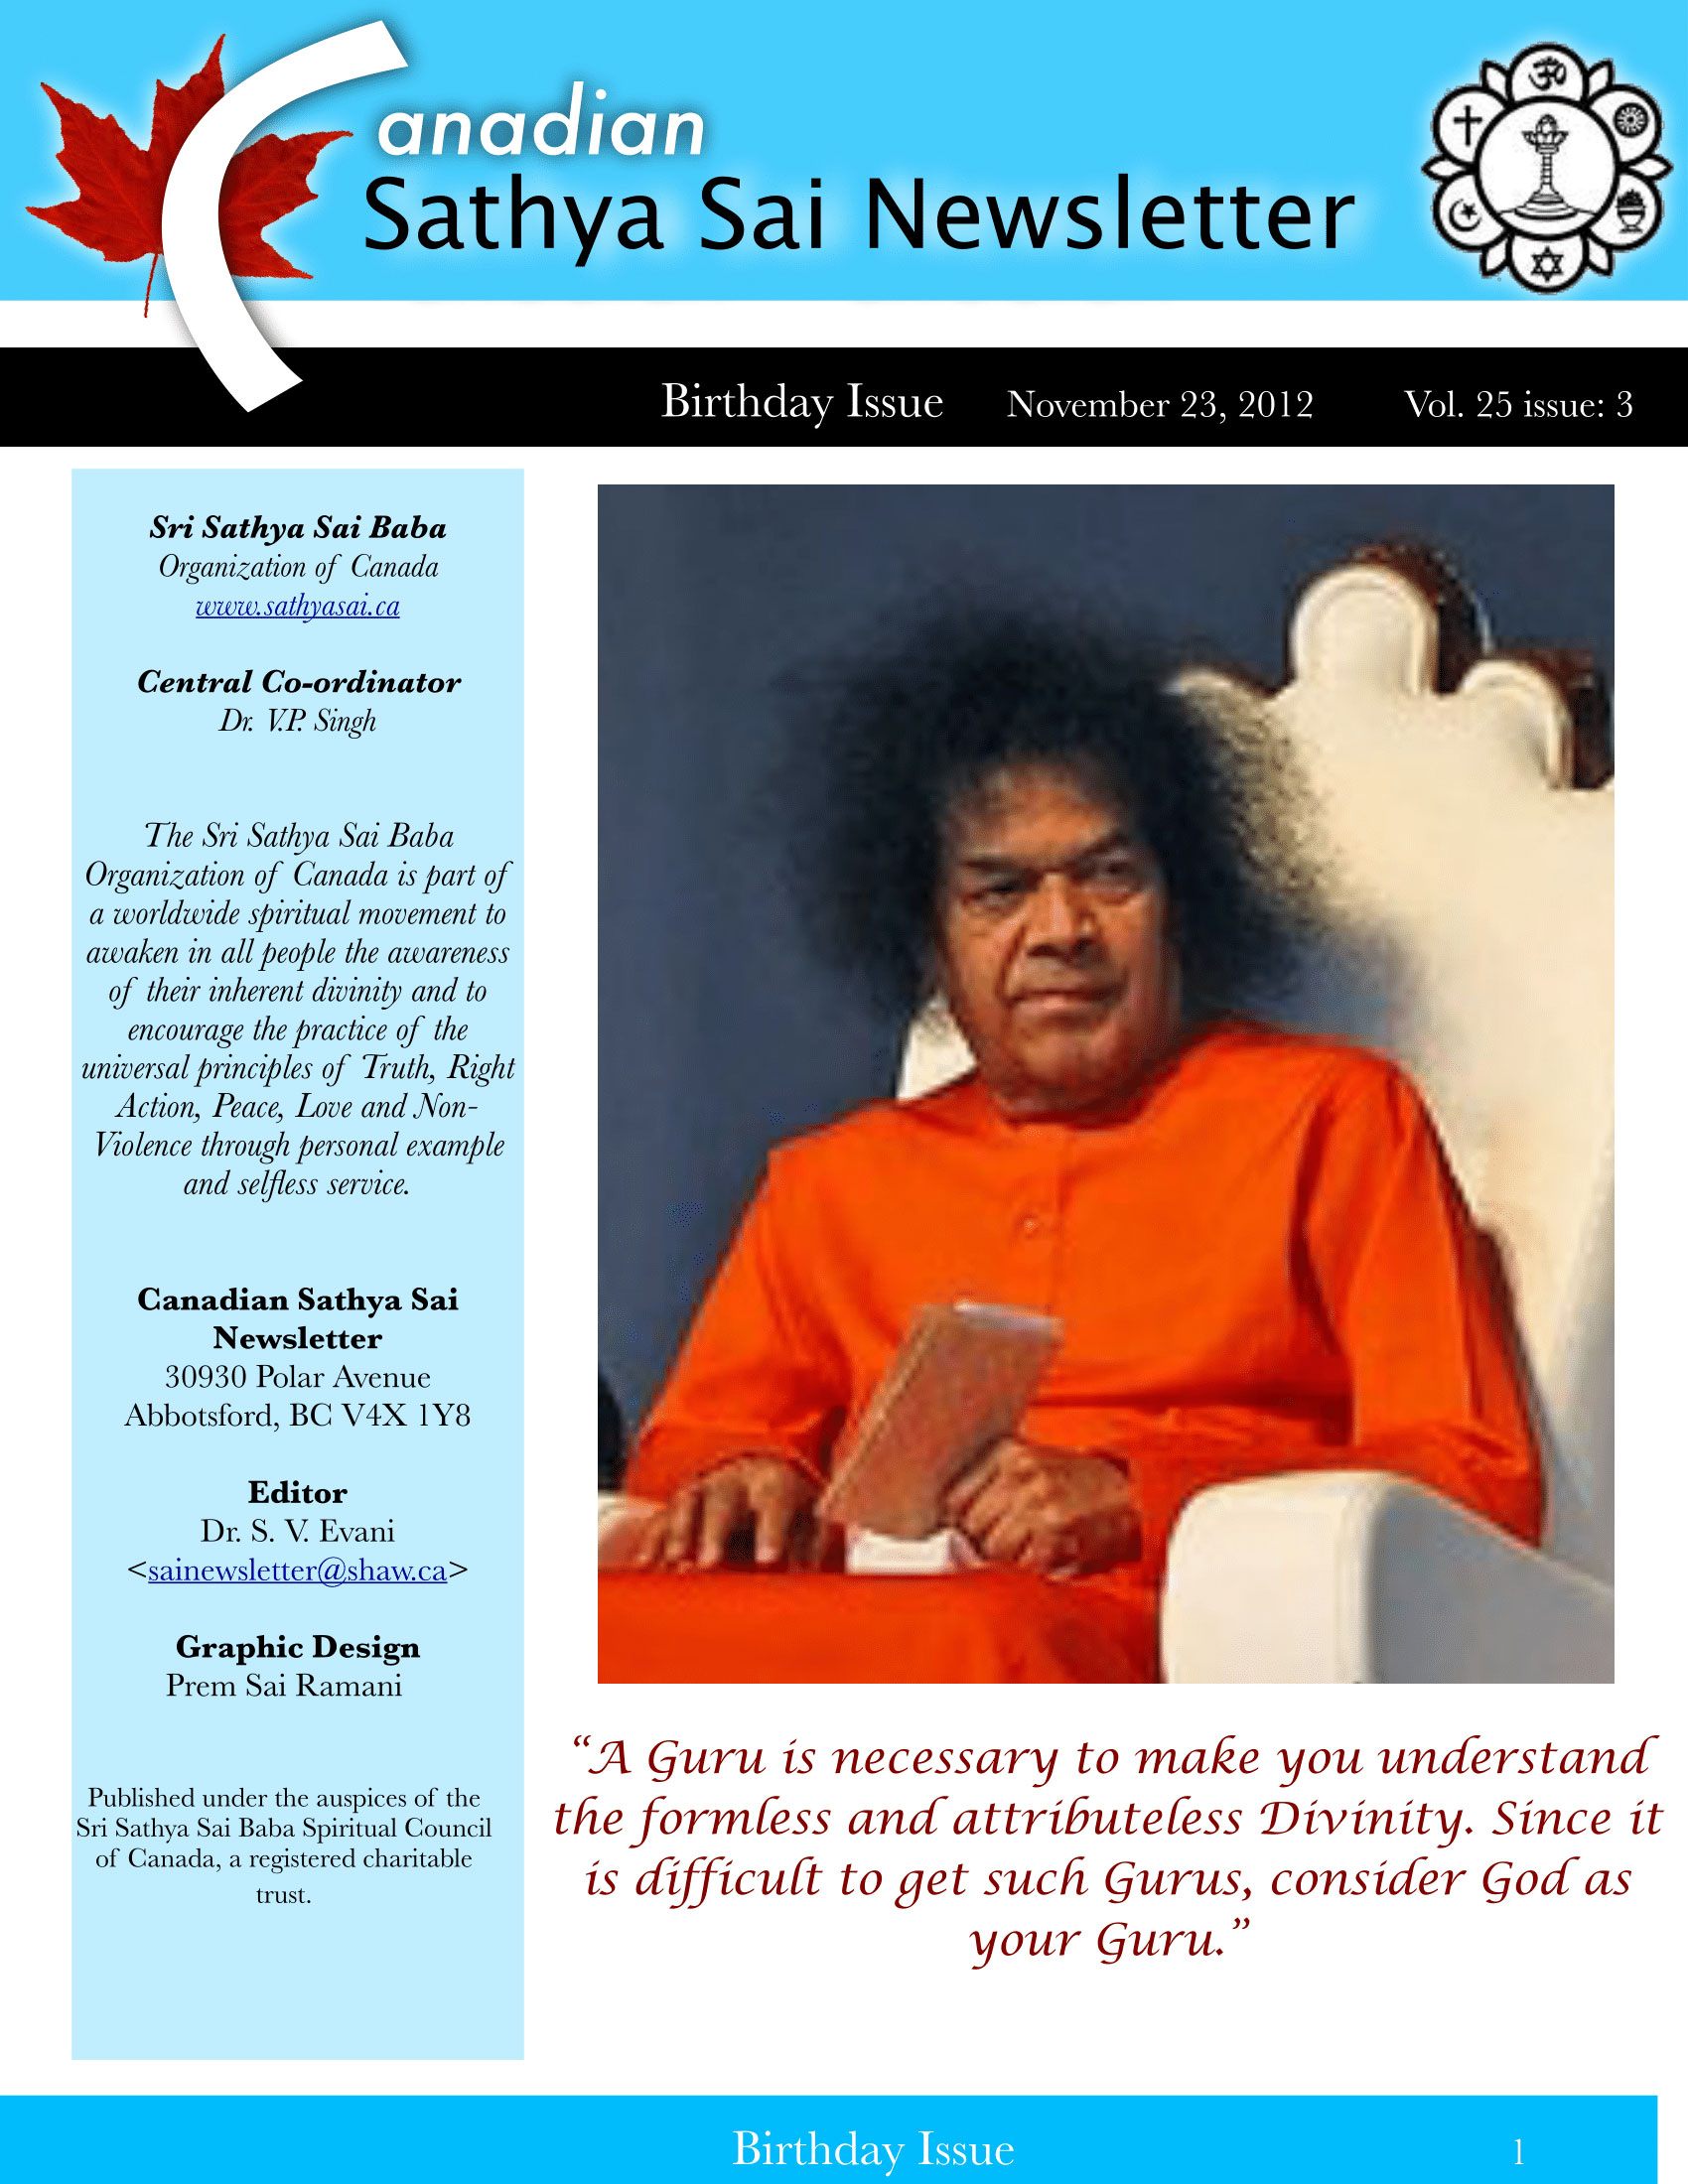 The Canadian Sathya Sai Magazine - Winter 2012